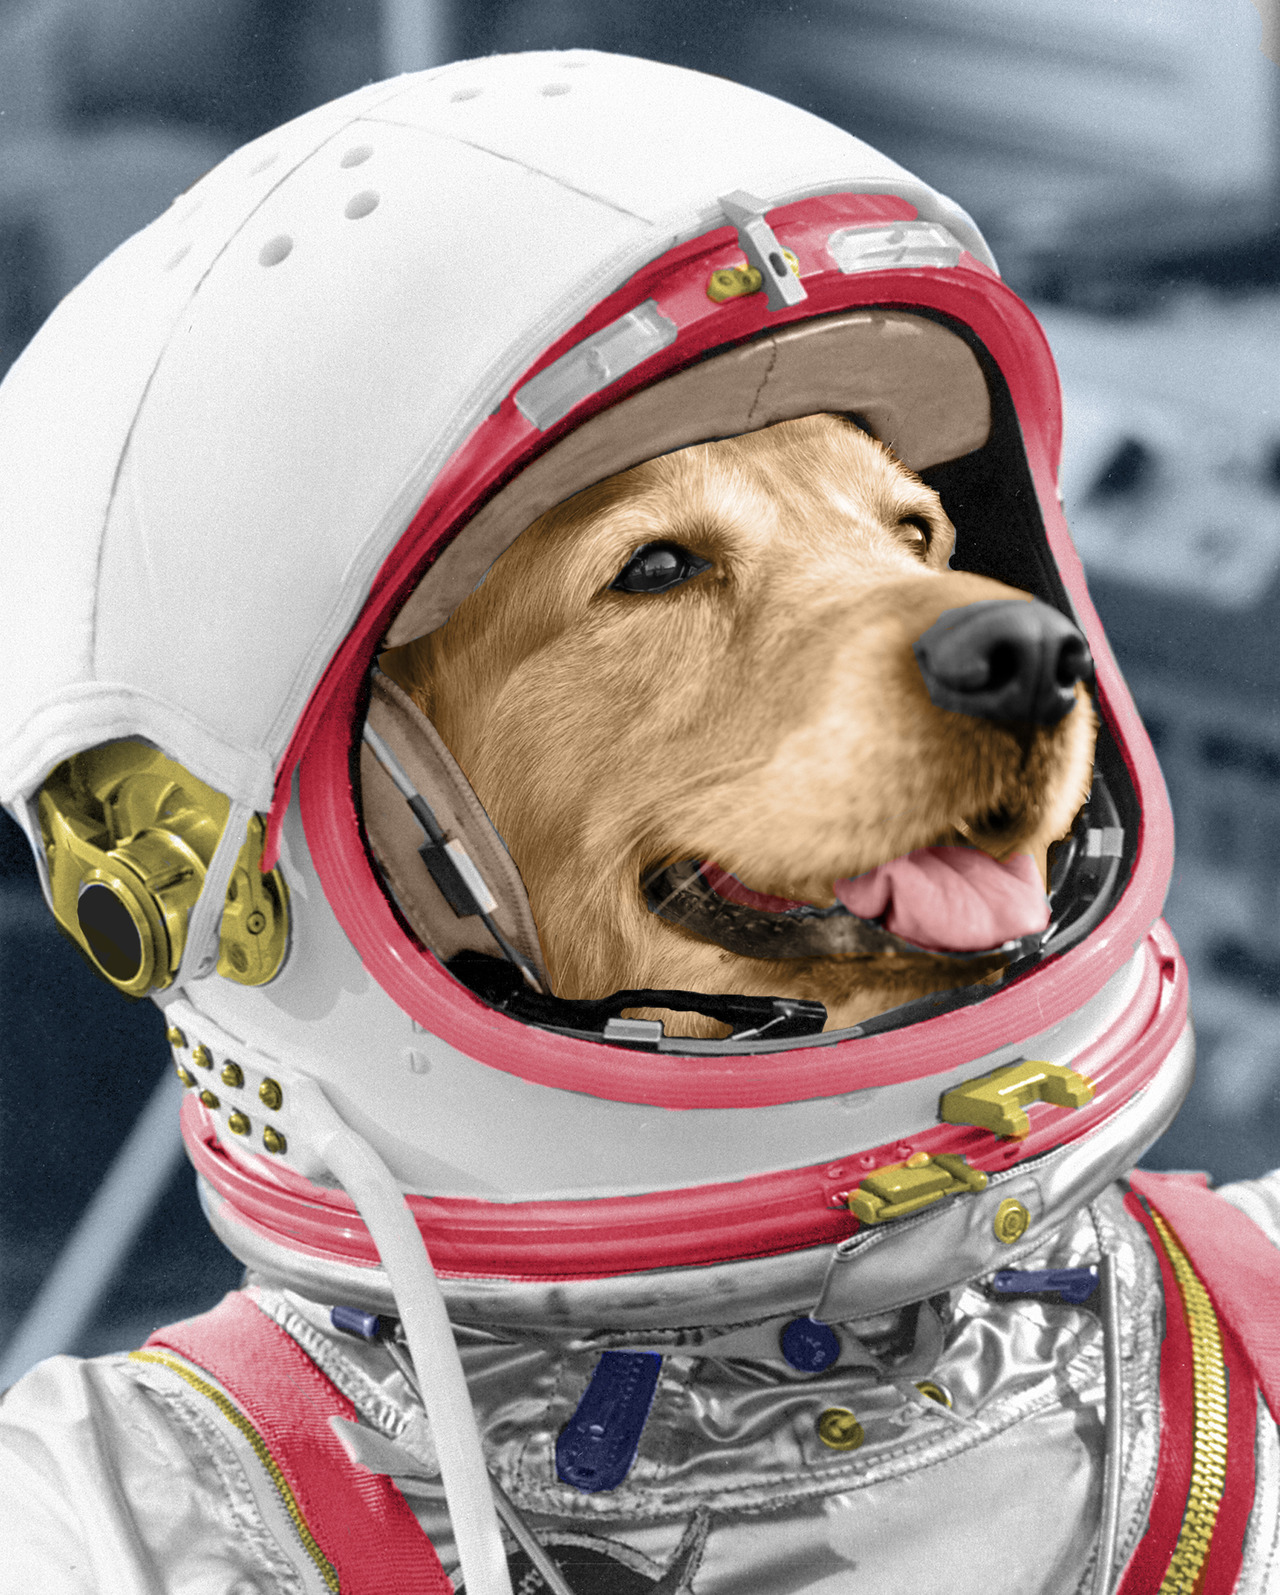 "fakescience:  Rover, the second Space Dog, is the reason we call space robots ""rovers"" today. Sadly, Rover died due to an ejector seat malfunction. Pay tribute to him by buying Fake Science 101. It's our completely new textbook. It's 272 pages. Full color. Cheap. And it will make you smart. We promise to start spamming about it less. But don't take our word that the book is worth your time. Learn more at Slate, Mental Floss, Forbes, Splitsider, the Huffington Post, Laughing Squid, Mashable, Business Insider, Geeks Are Sexy, Daily Dot, It's OK To Be Smart, Real Clear Science, and more. Or listen about it on the Smart People Podcast or Geek Speak Radio. You can also read our AMAA on Reddit. Thanks for tolerating our spam. None of this would be possible without you—really. We have scientifically proven that our readers are the best. And thanks for making the right decision. For Rover.  so cute"